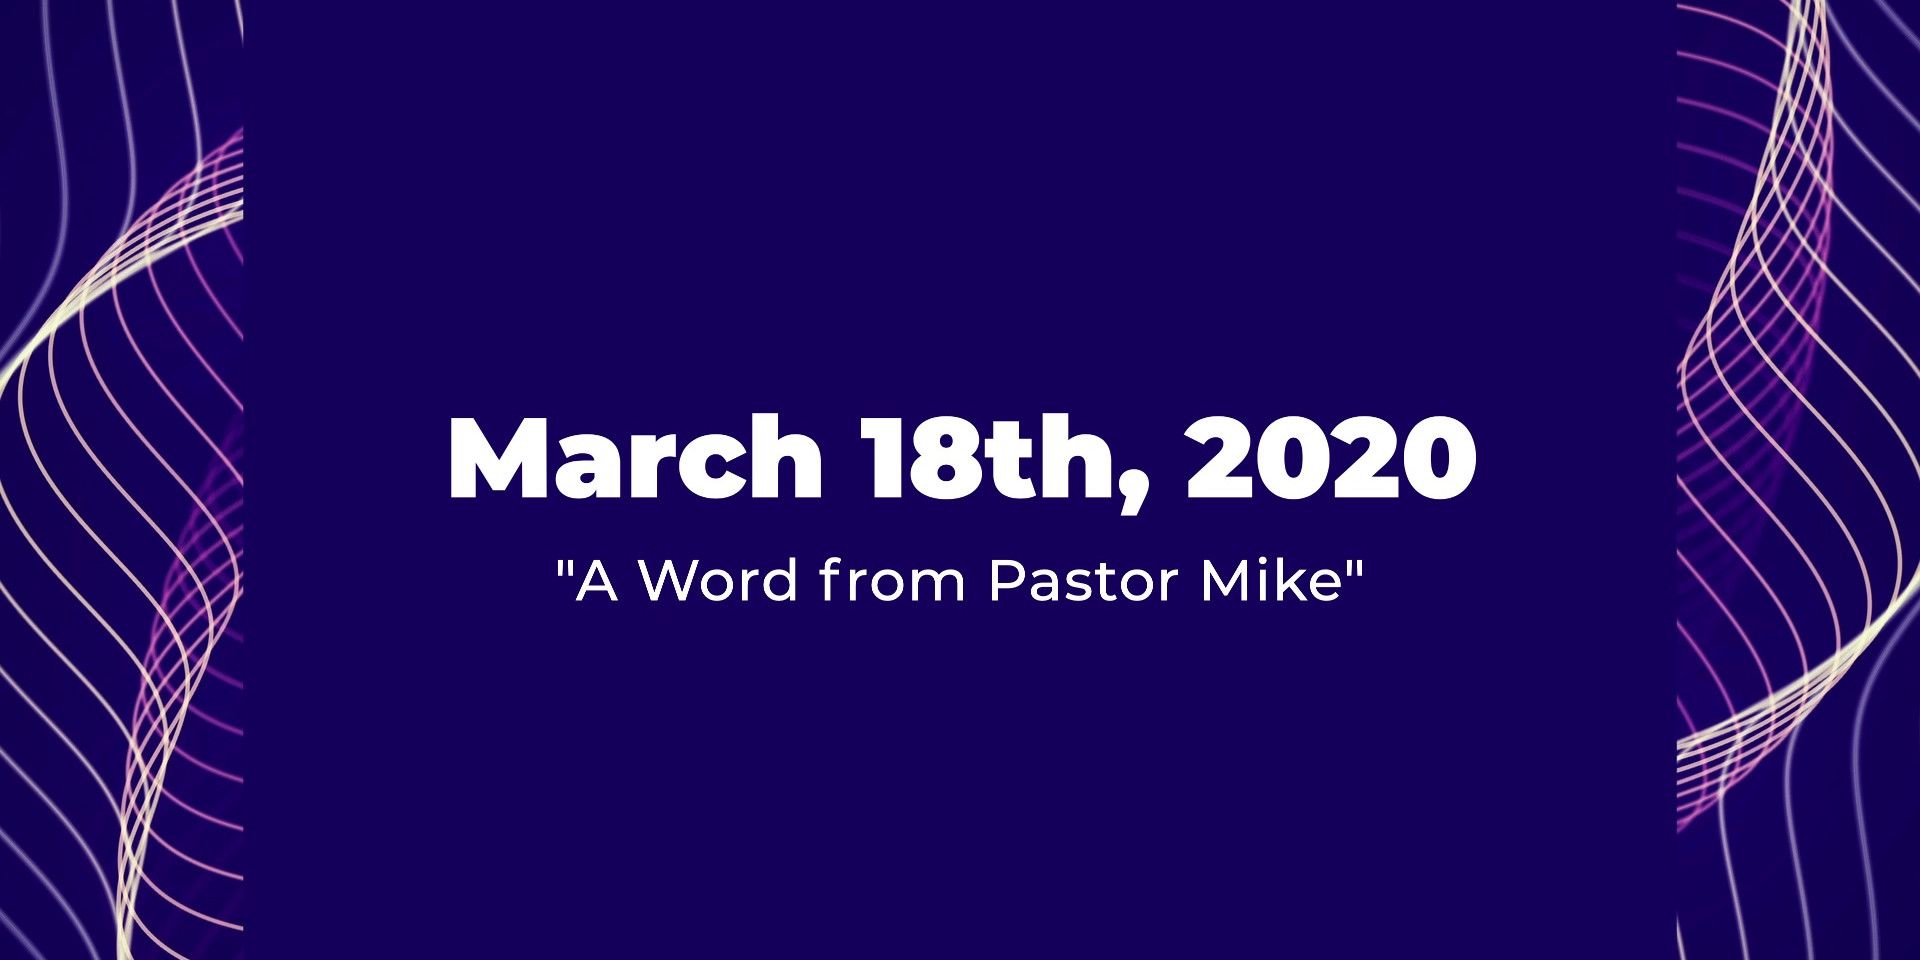 A Word from Pastor Mike